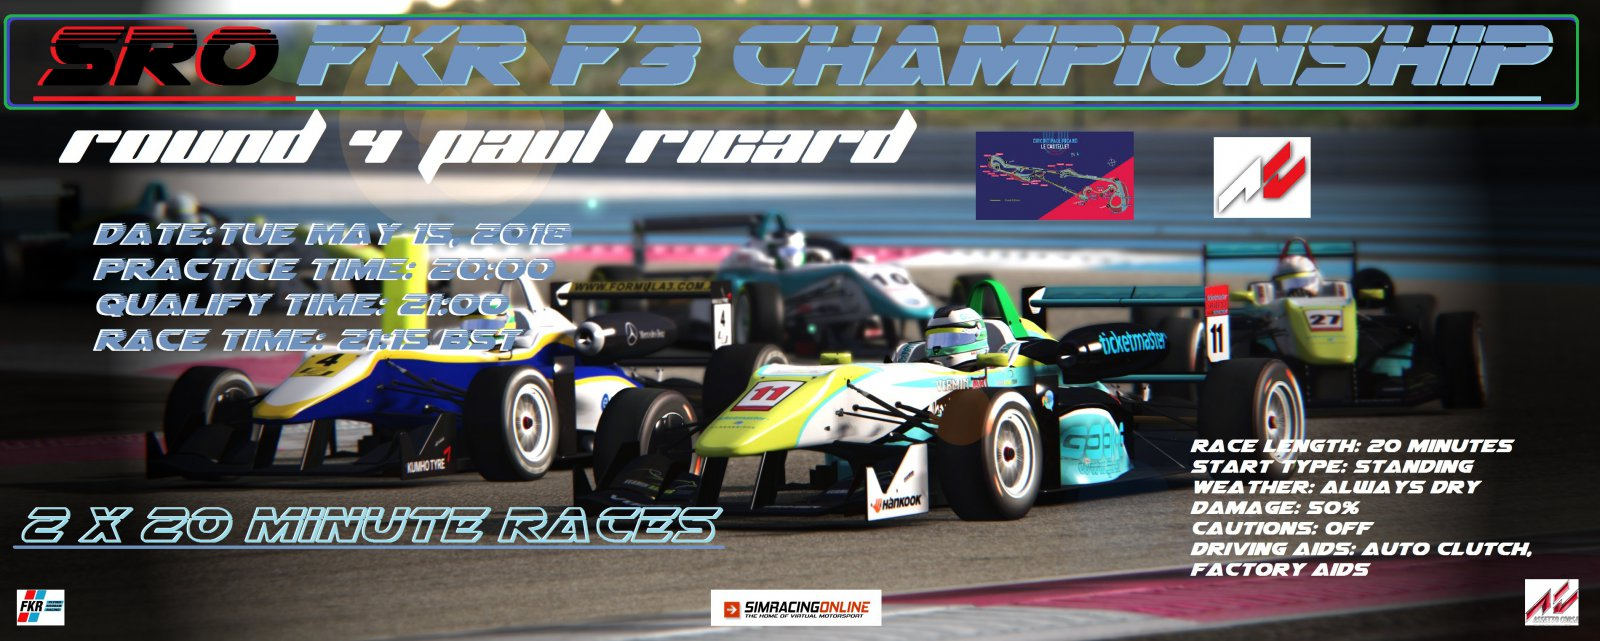 Screenshot_dallara_f312_paul_ricard_7-5-118-11-44-10k2.jpg